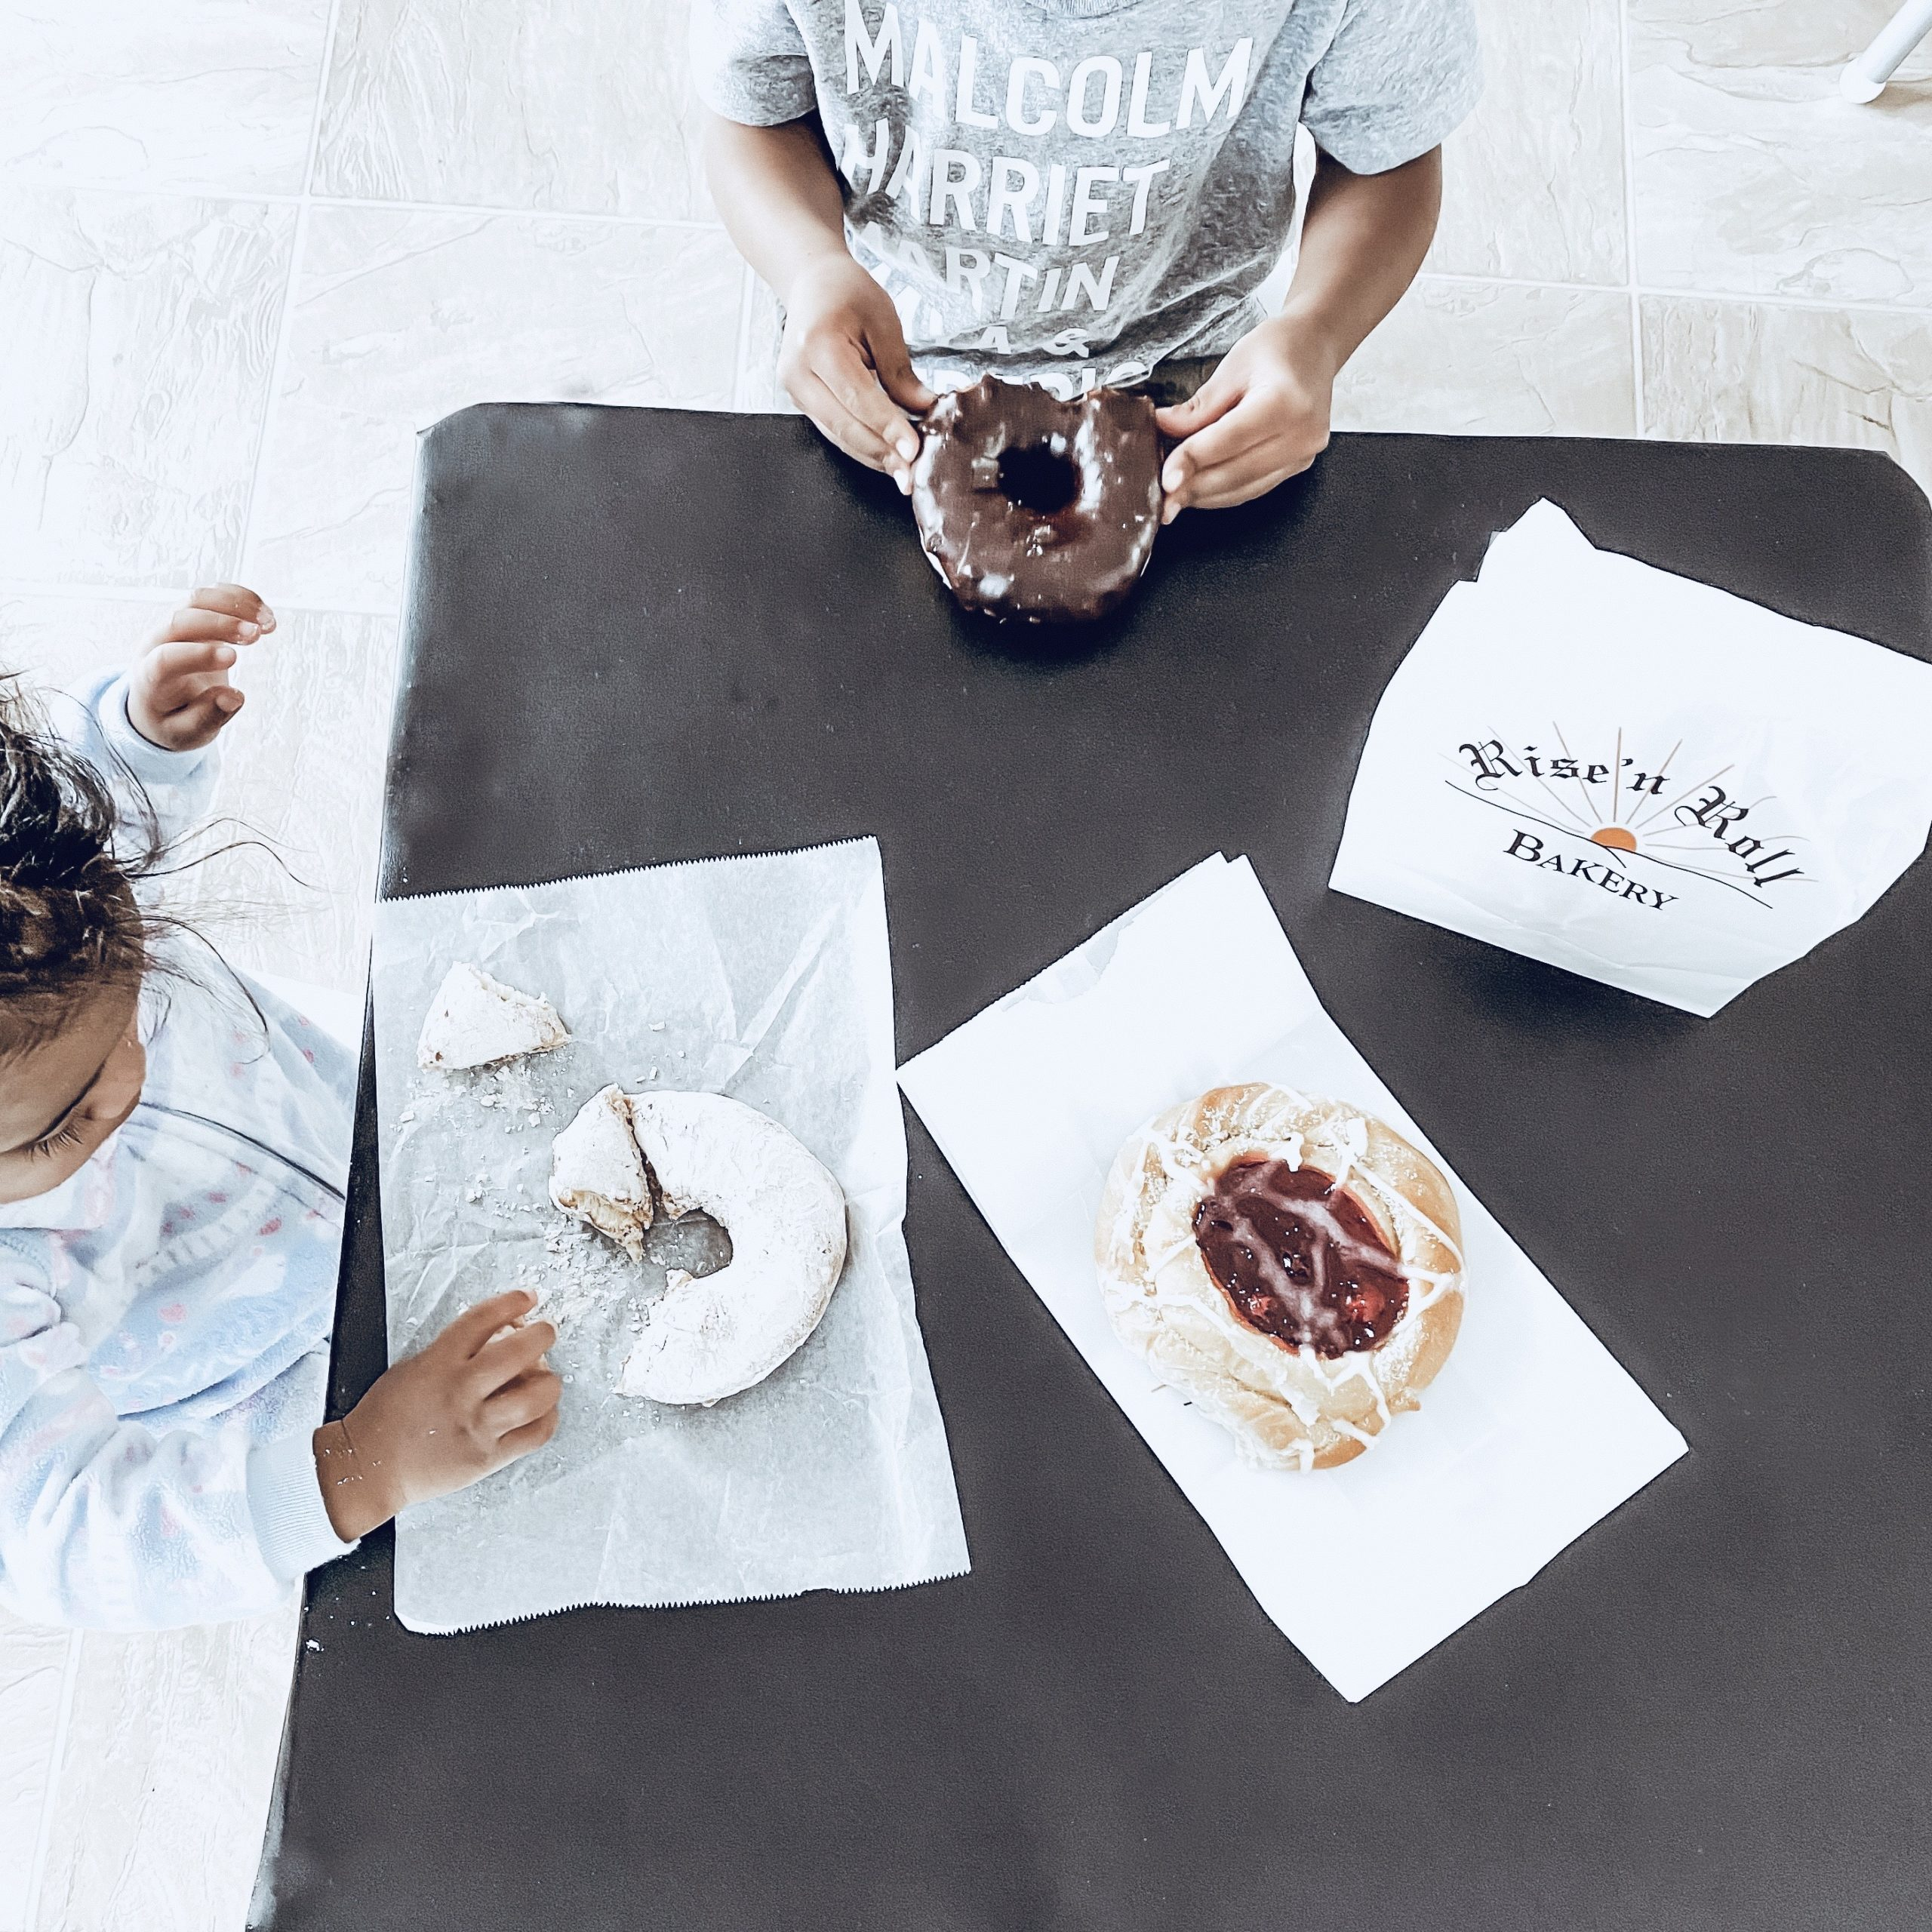 rise'n roll donuts